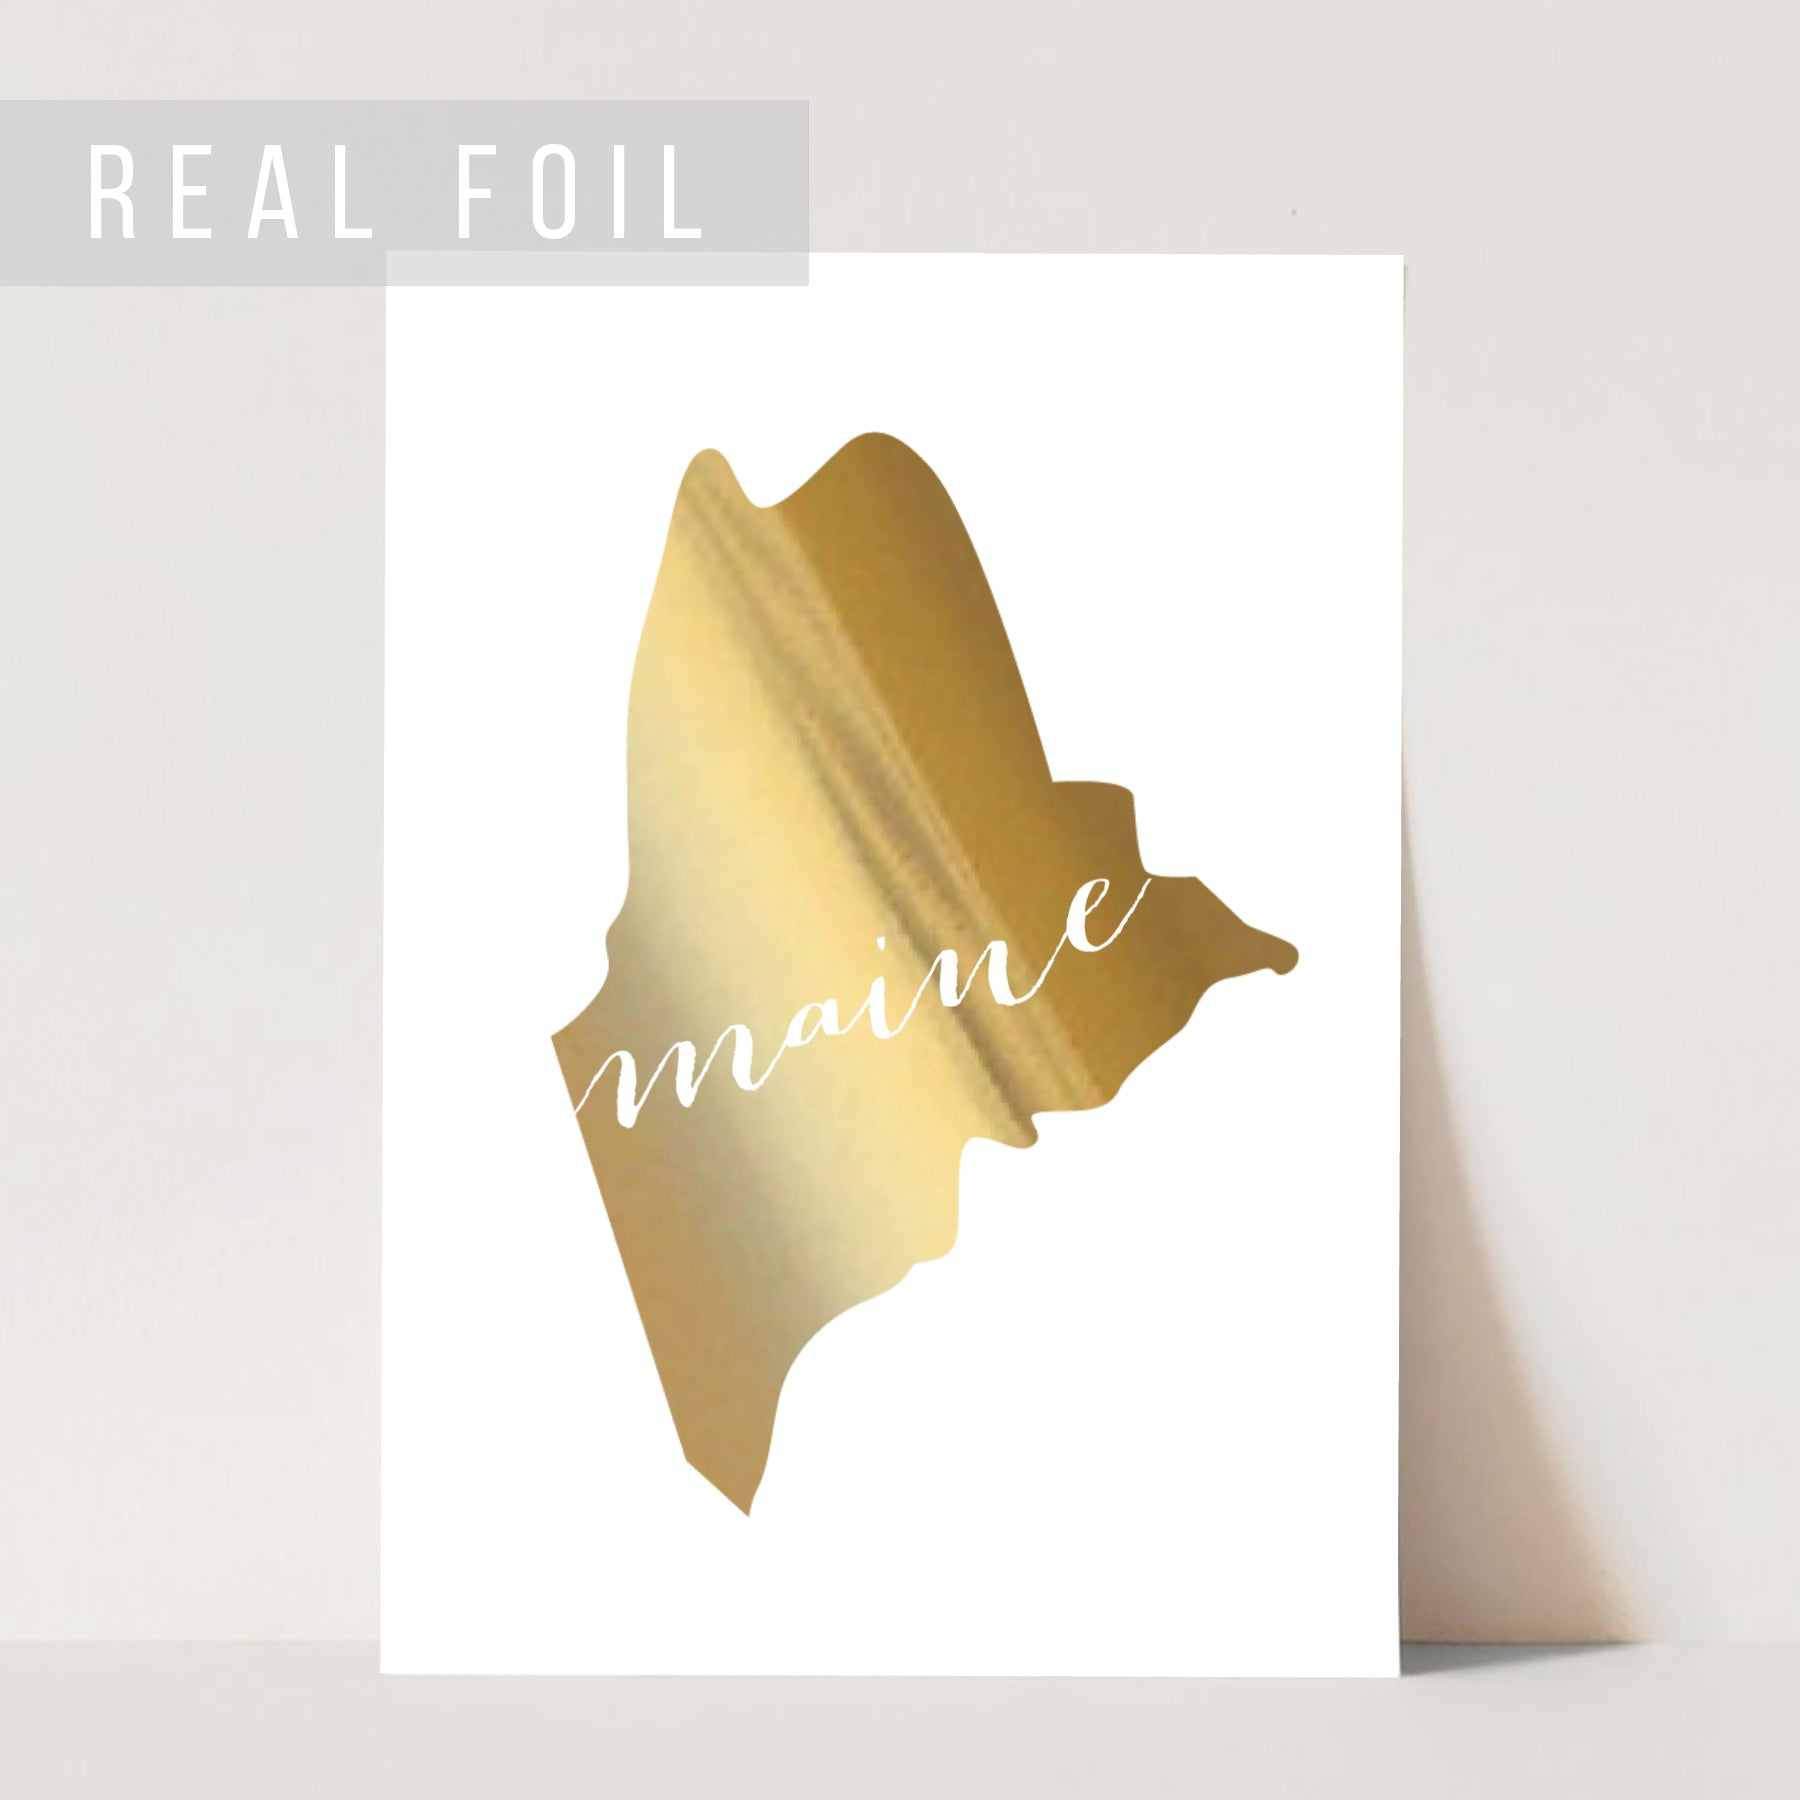 Maine State Foiled Art Print